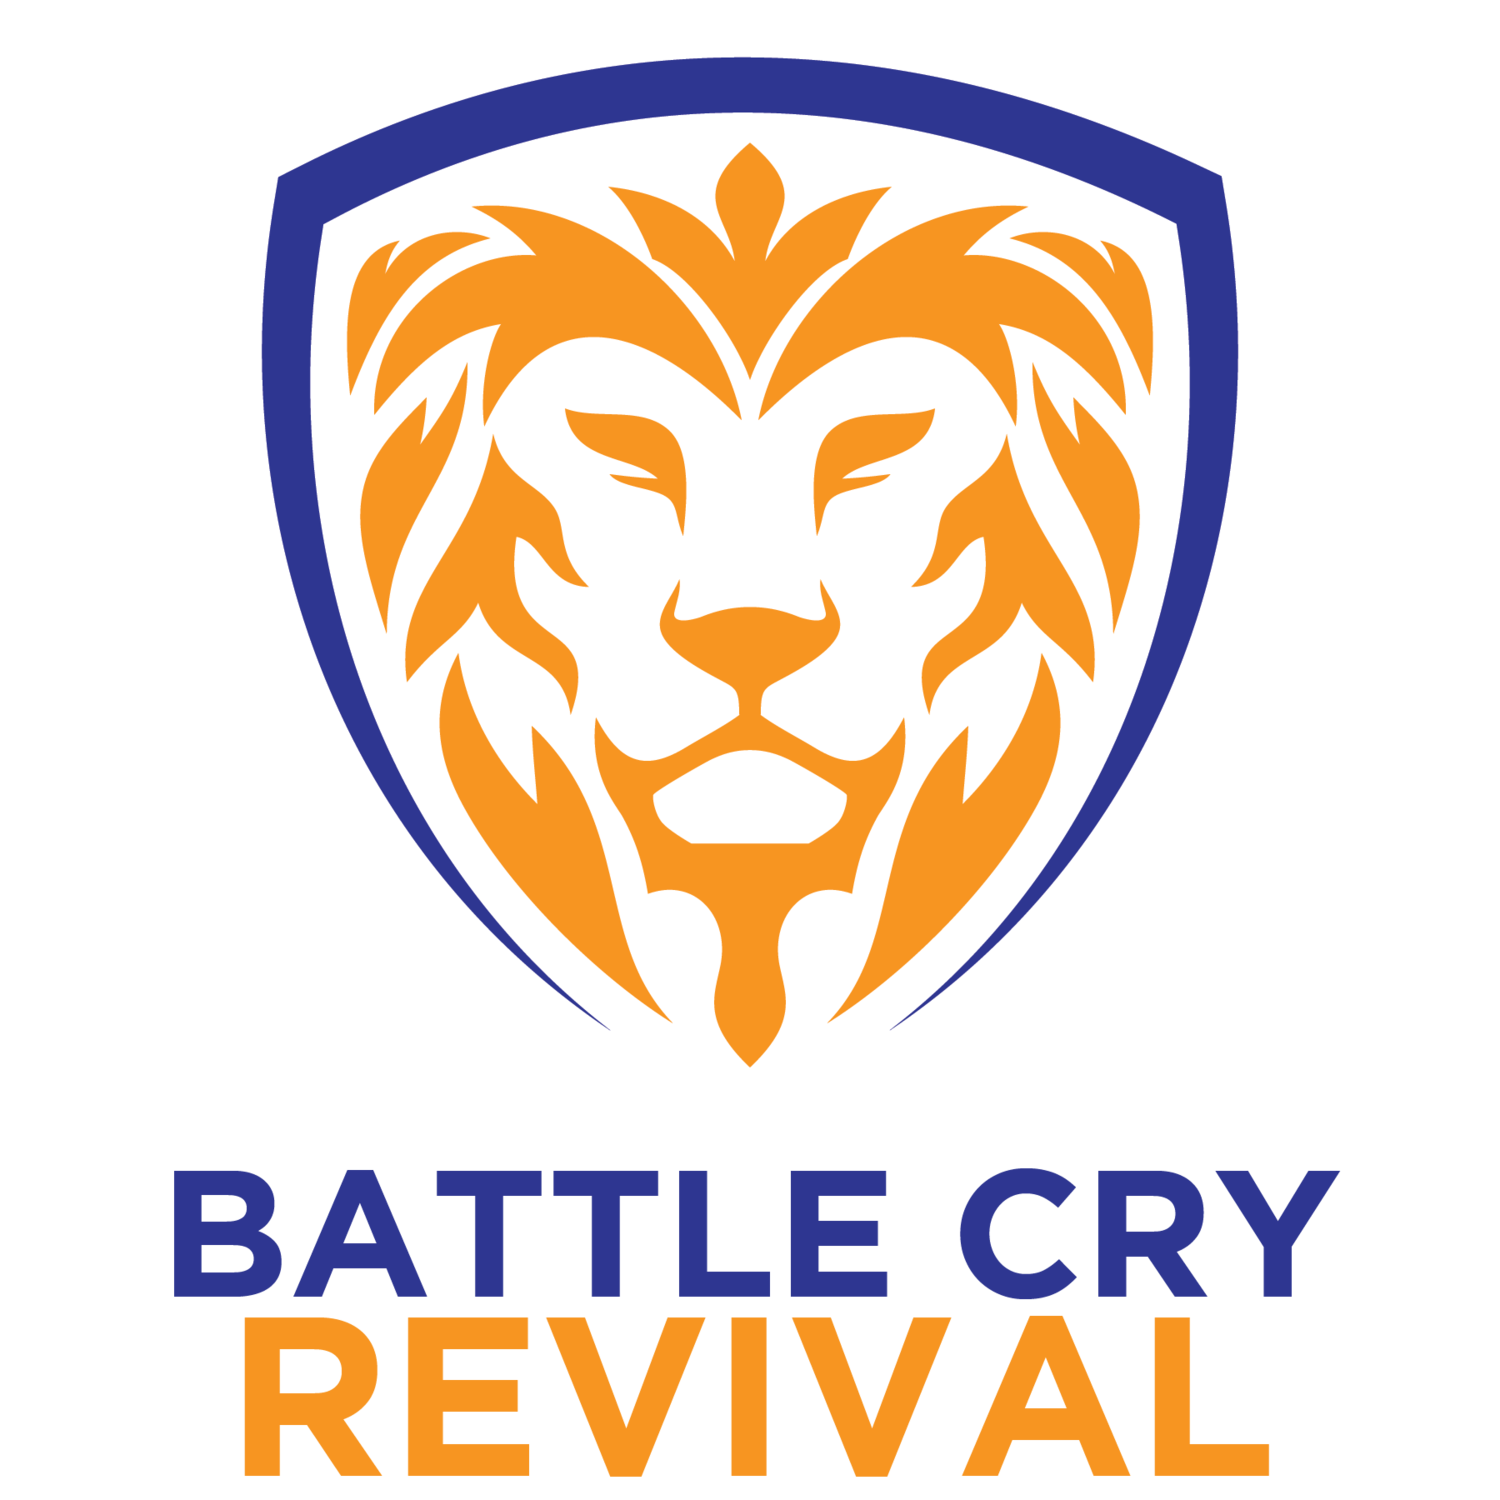 Battle Cry Revival